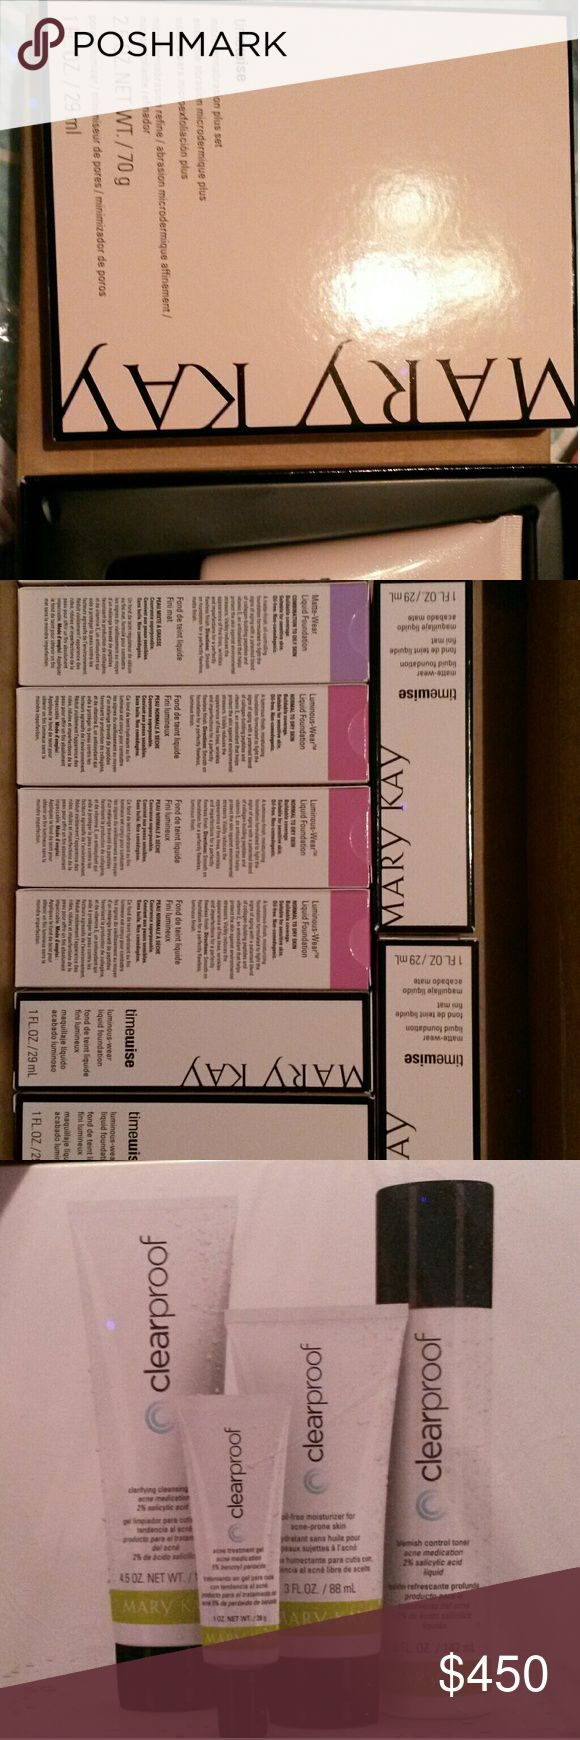 Mary kay online agreement on intouch - Mary Kay My Sister Got Her Starter Kit And Decided She Doesn T Want To